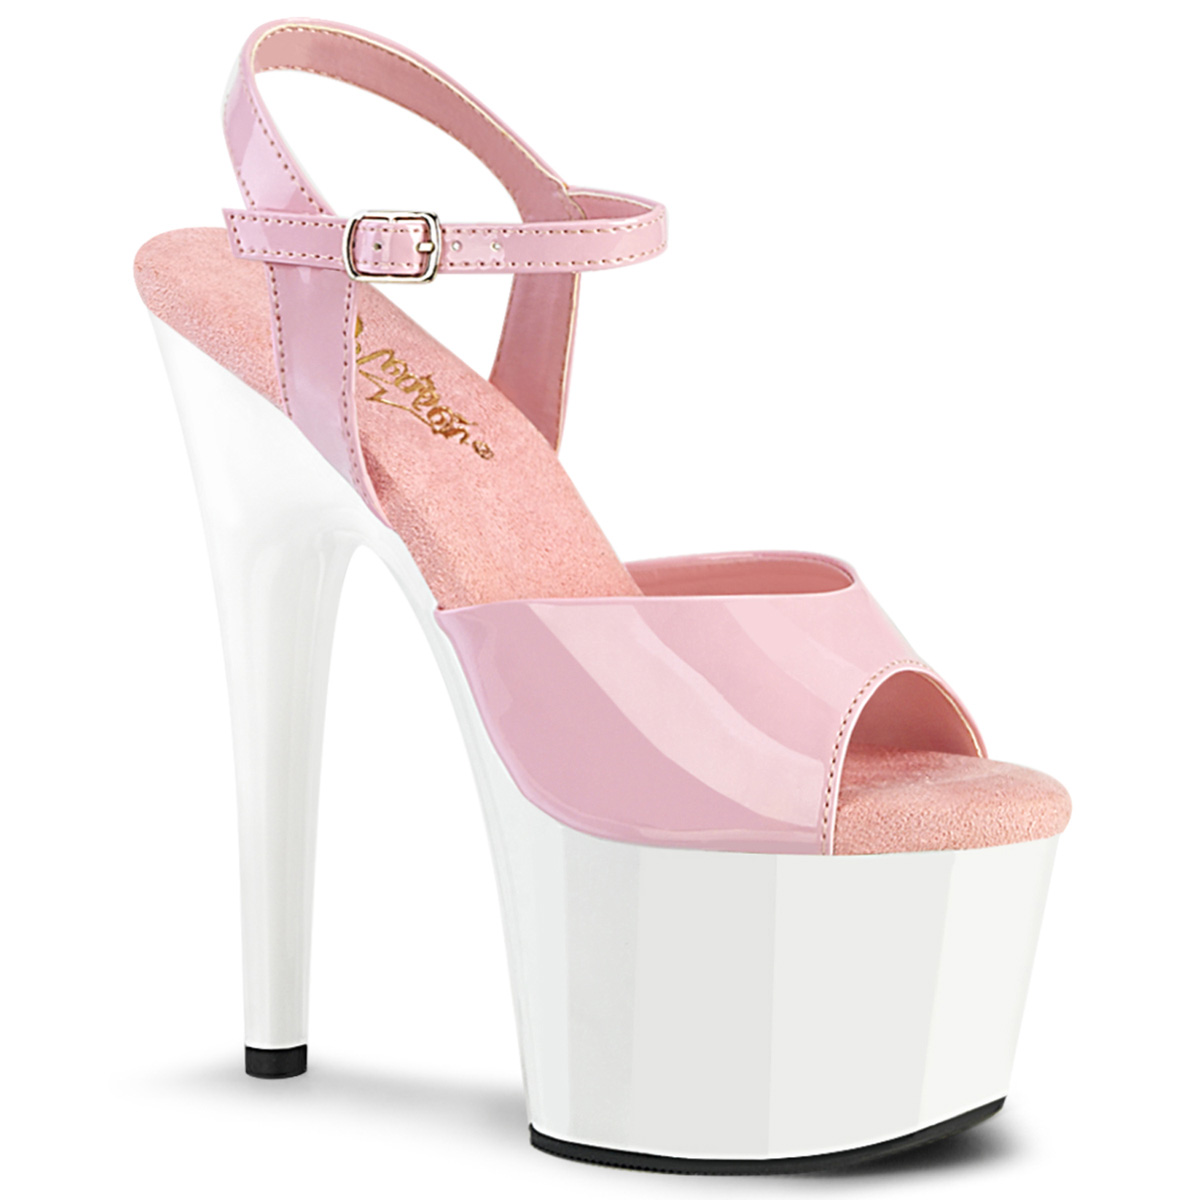 Pleaser SHOES & BOOTS : Platforms (Exotic Dancing) : 7